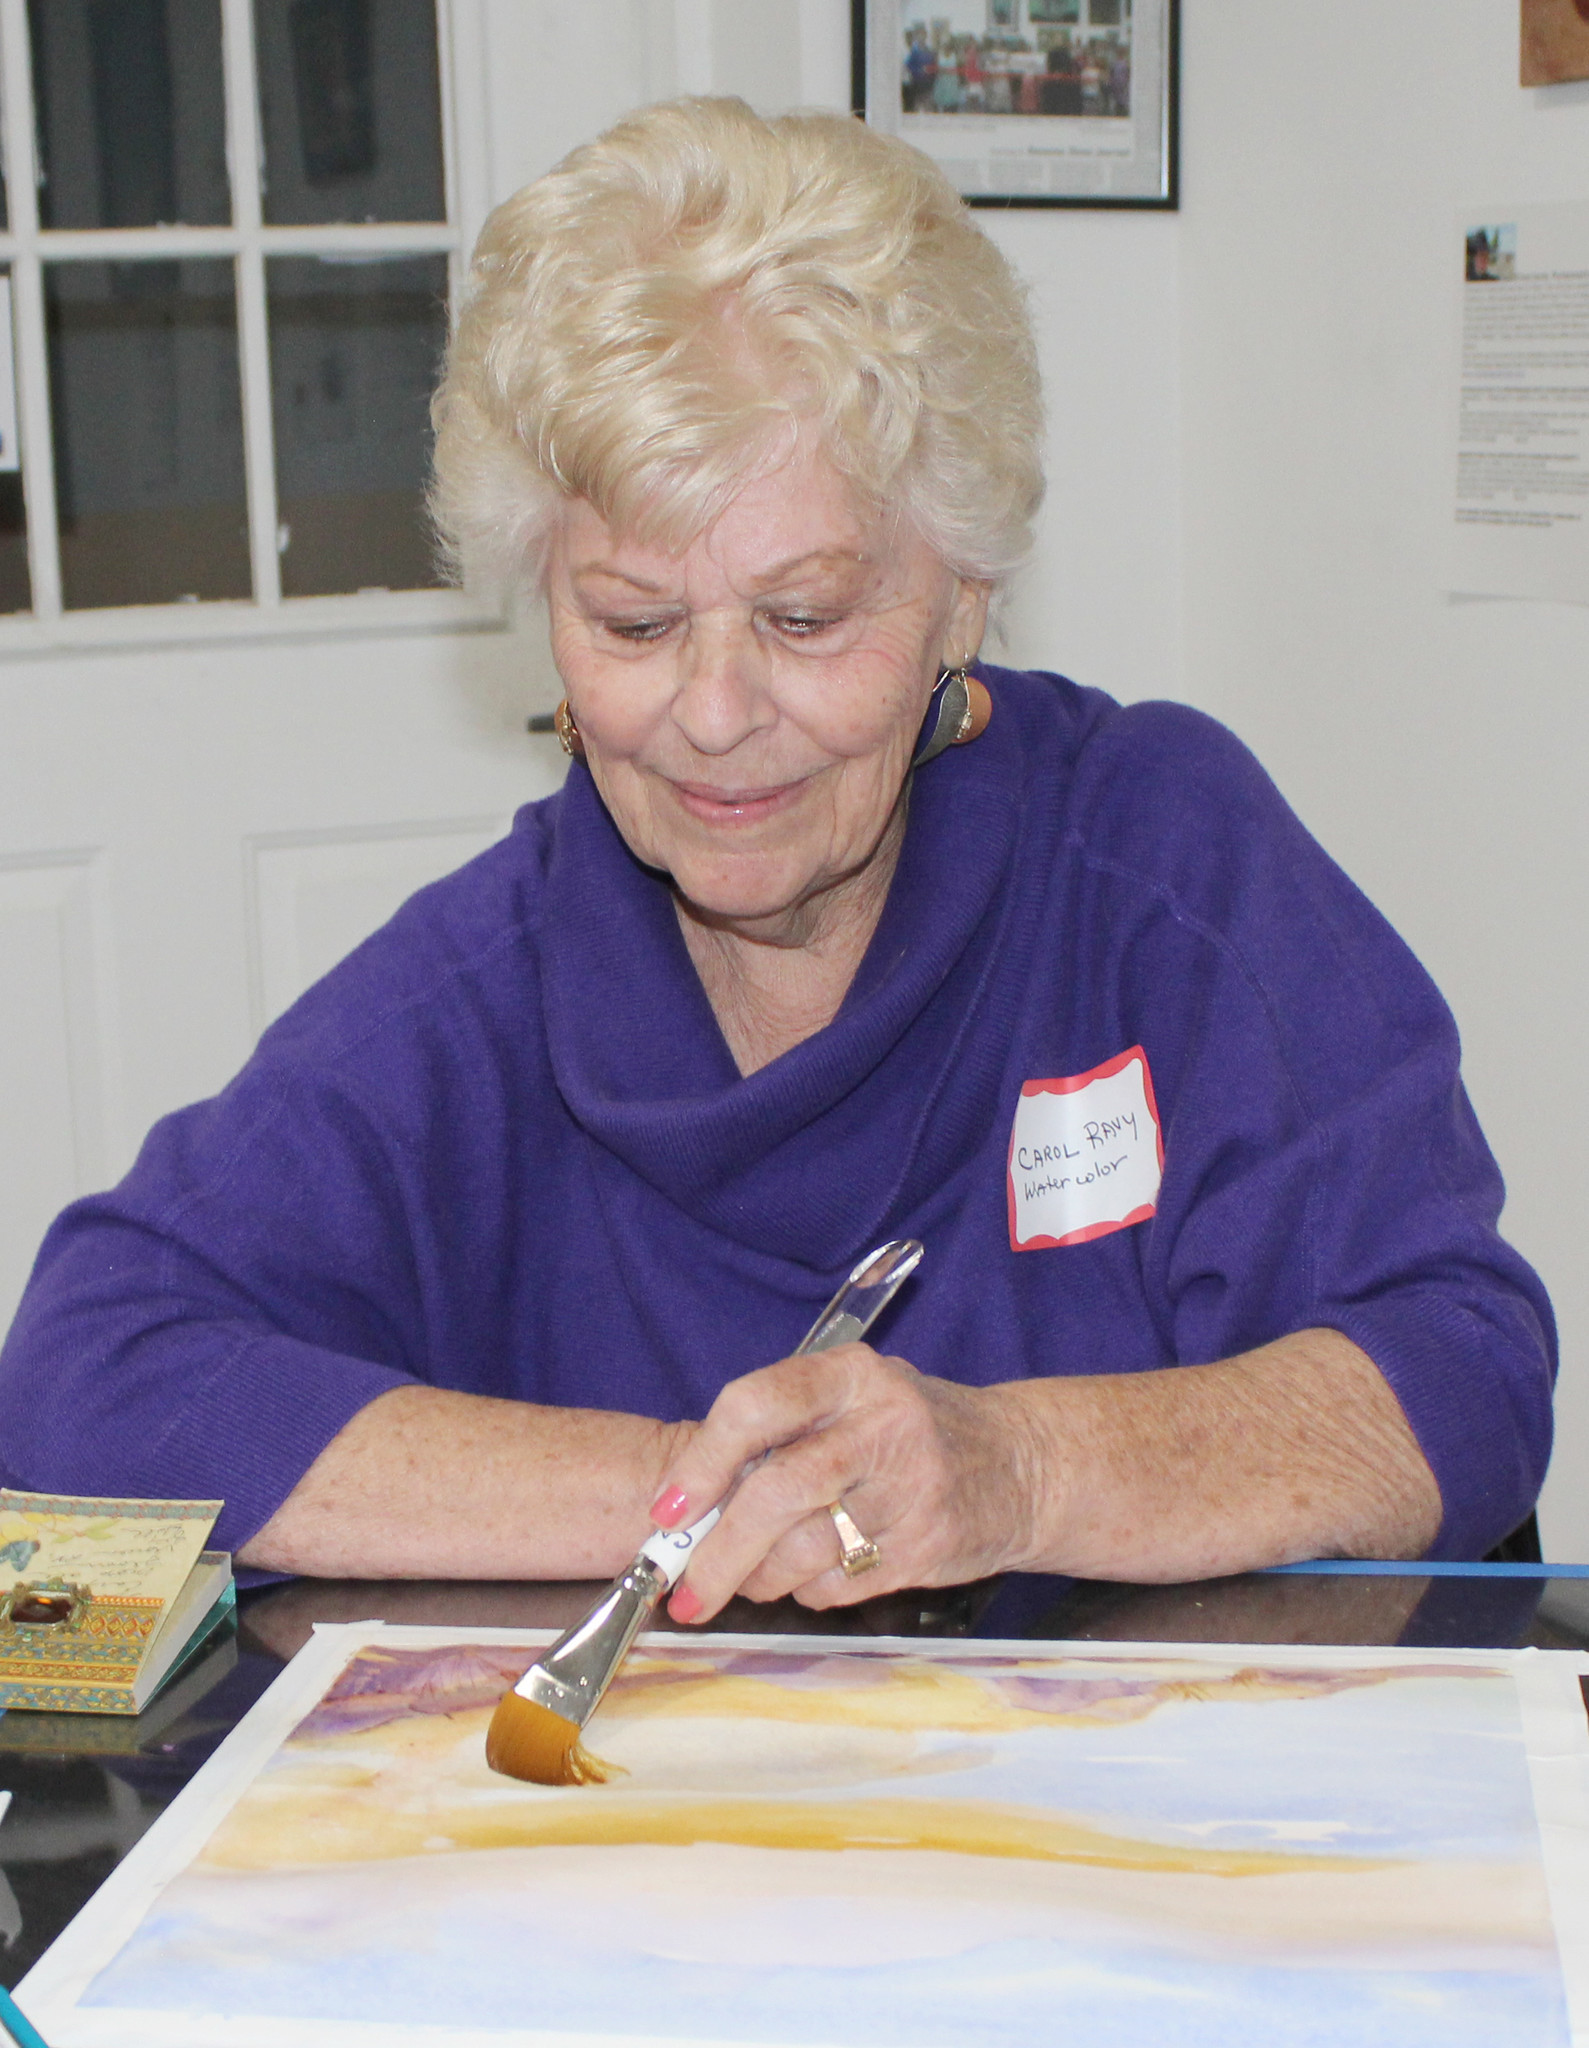 Artist Carol Ravy works on a watercolor during the First Friday event in January. The next First Friday Art party will be from 6 to 8 p.m. Feb. 1.